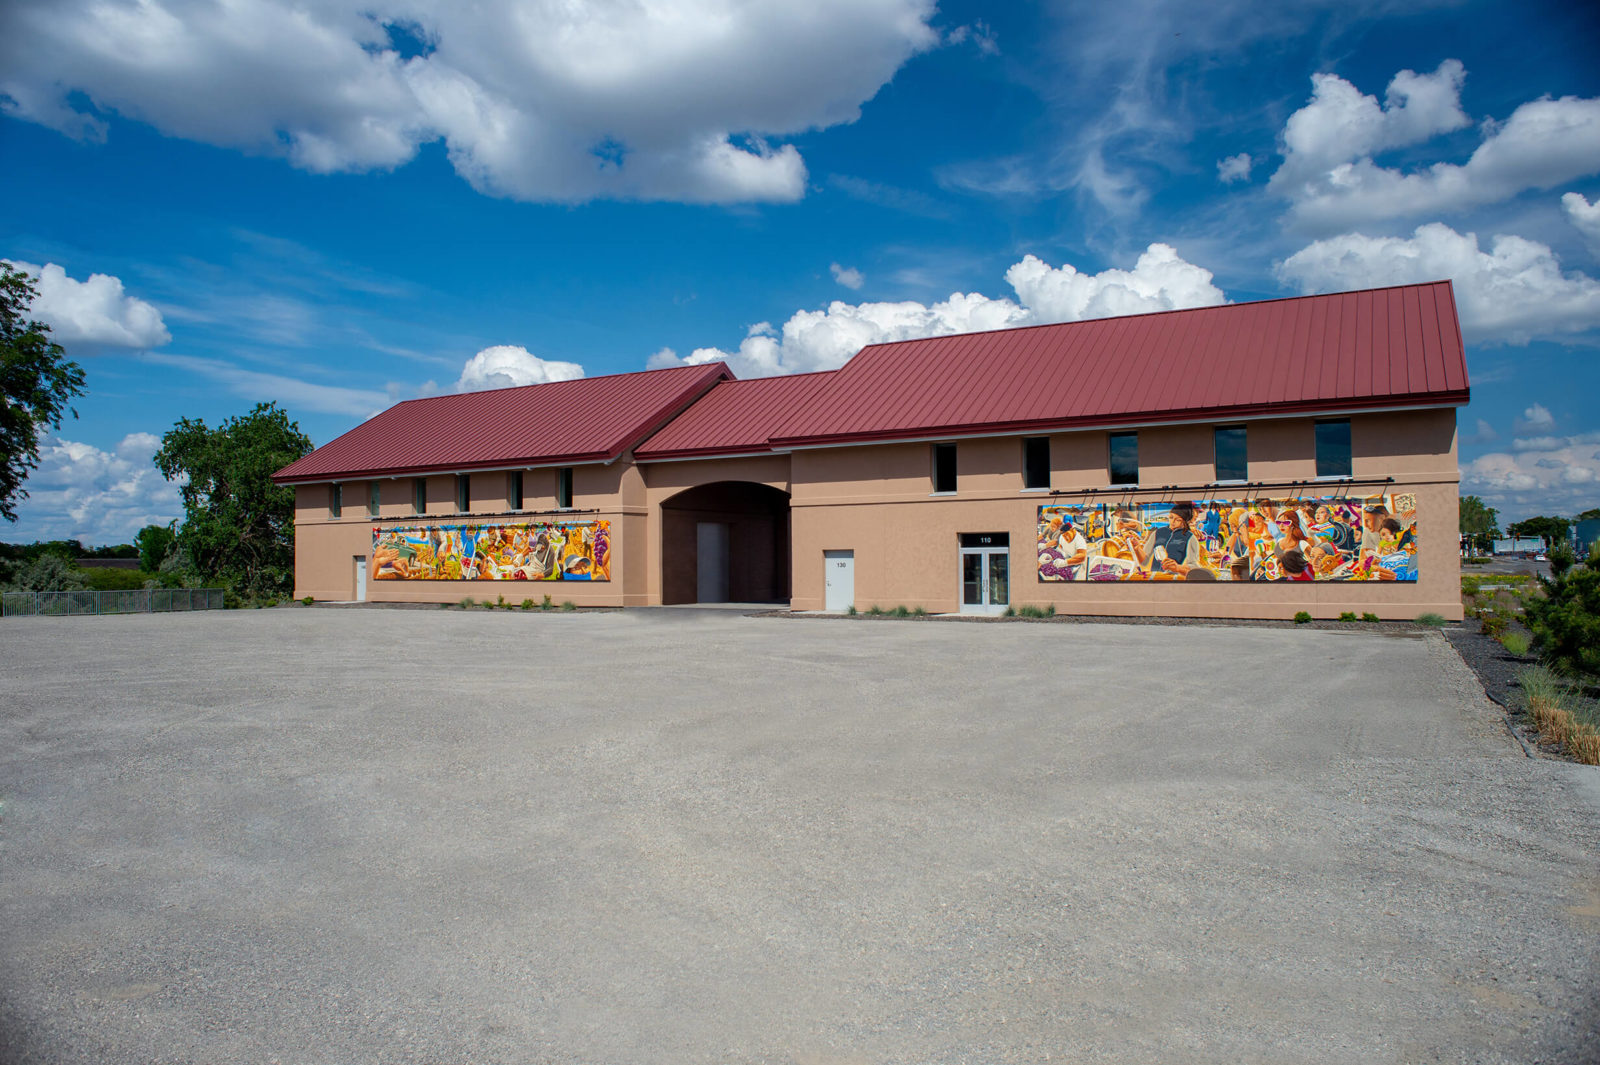 Latino Heritage Murals installed on winery buildings.